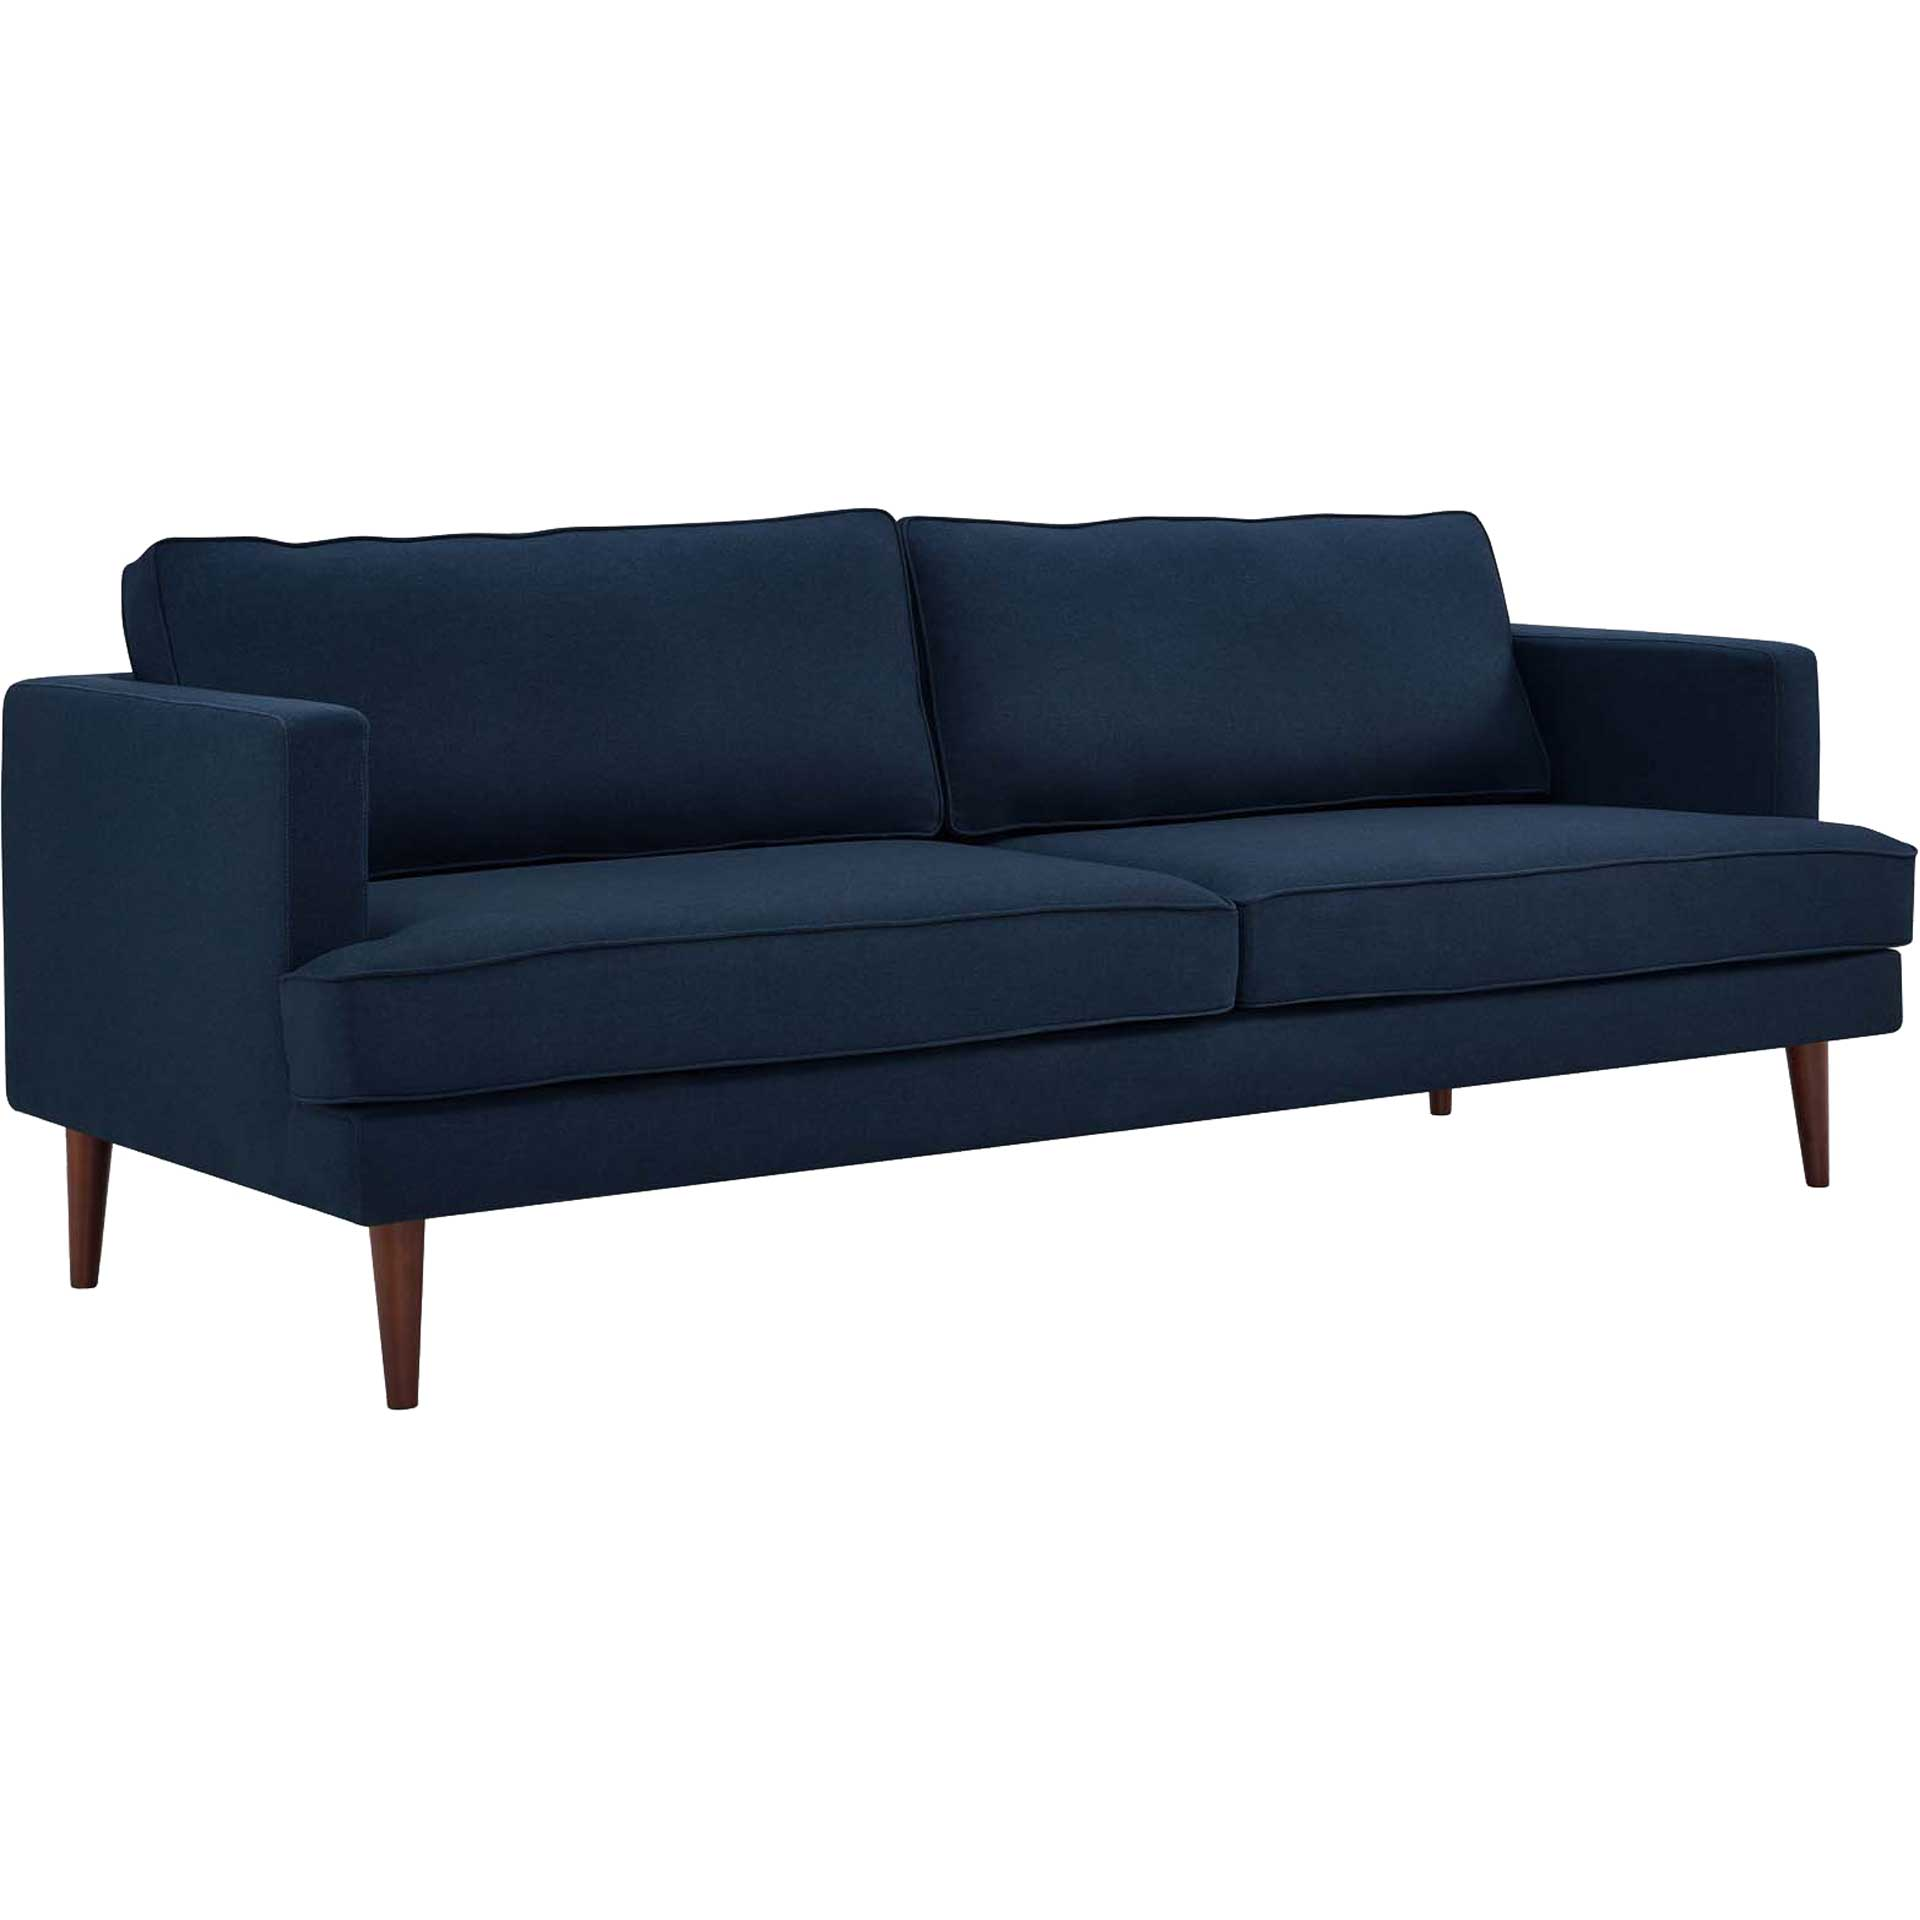 Aisley Upholstered Fabric Sofa Blue